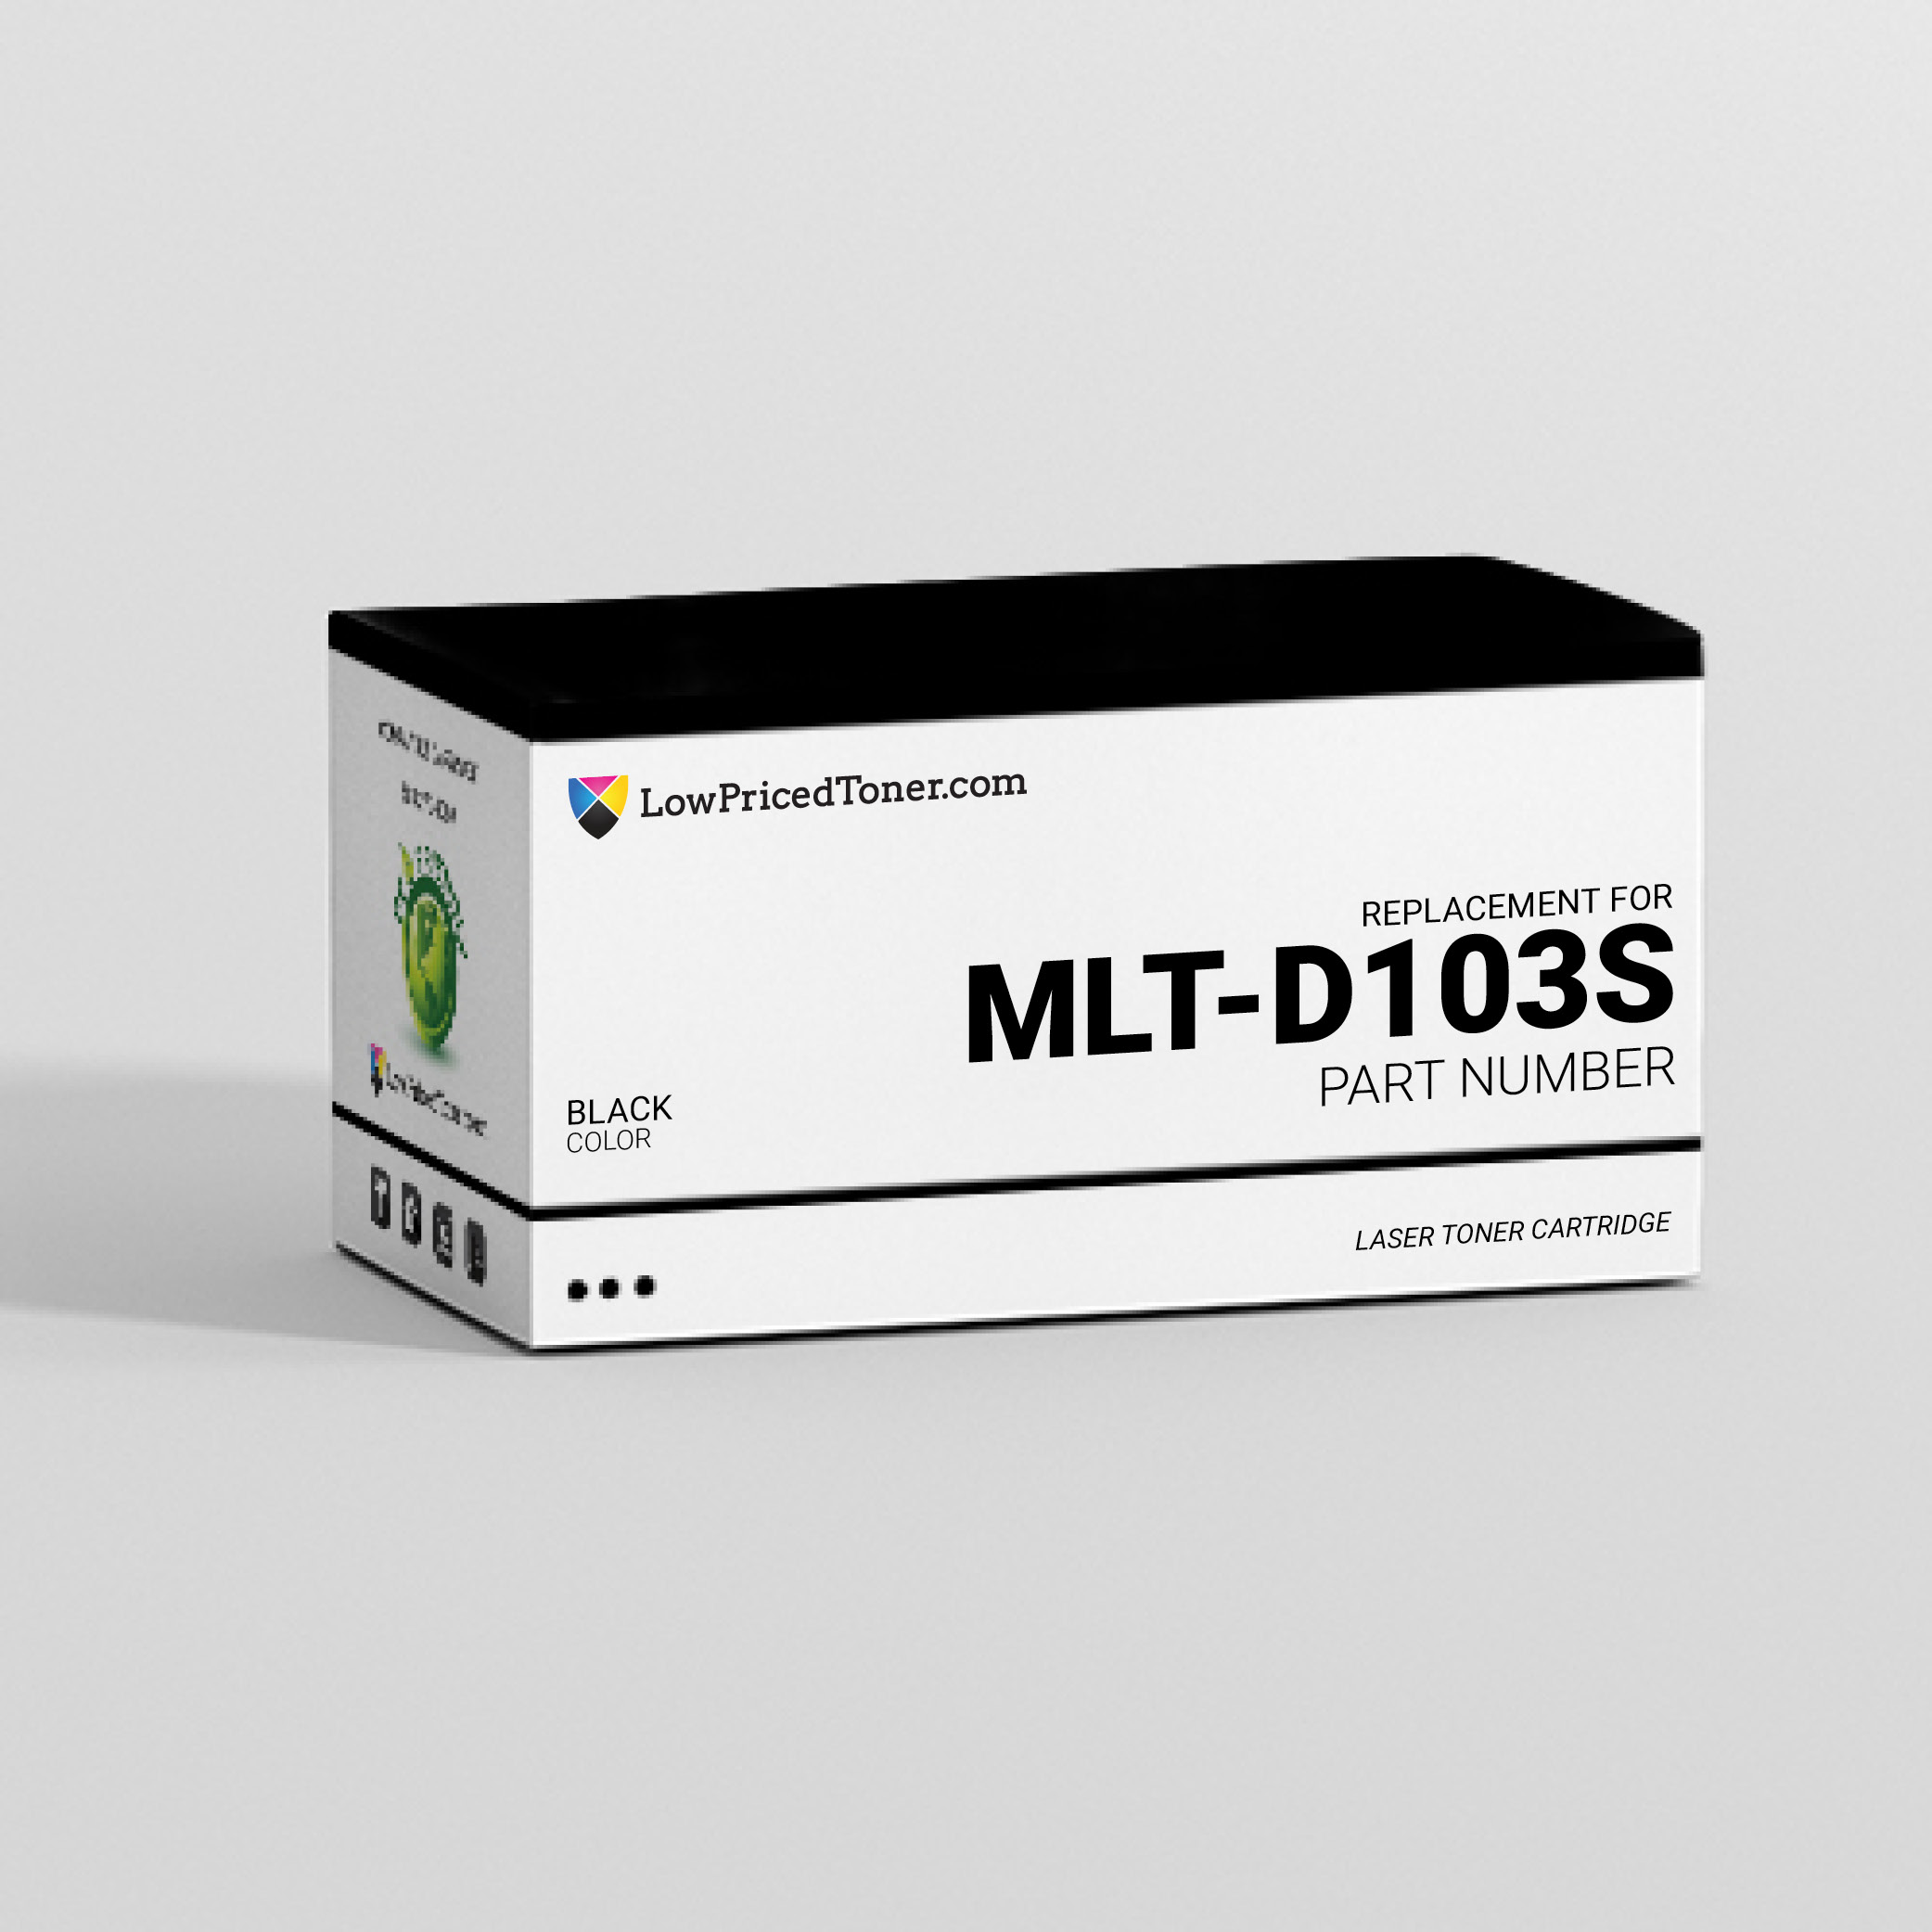 Samsung MLT-D103S Compatible Black Laser Toner Cartridge